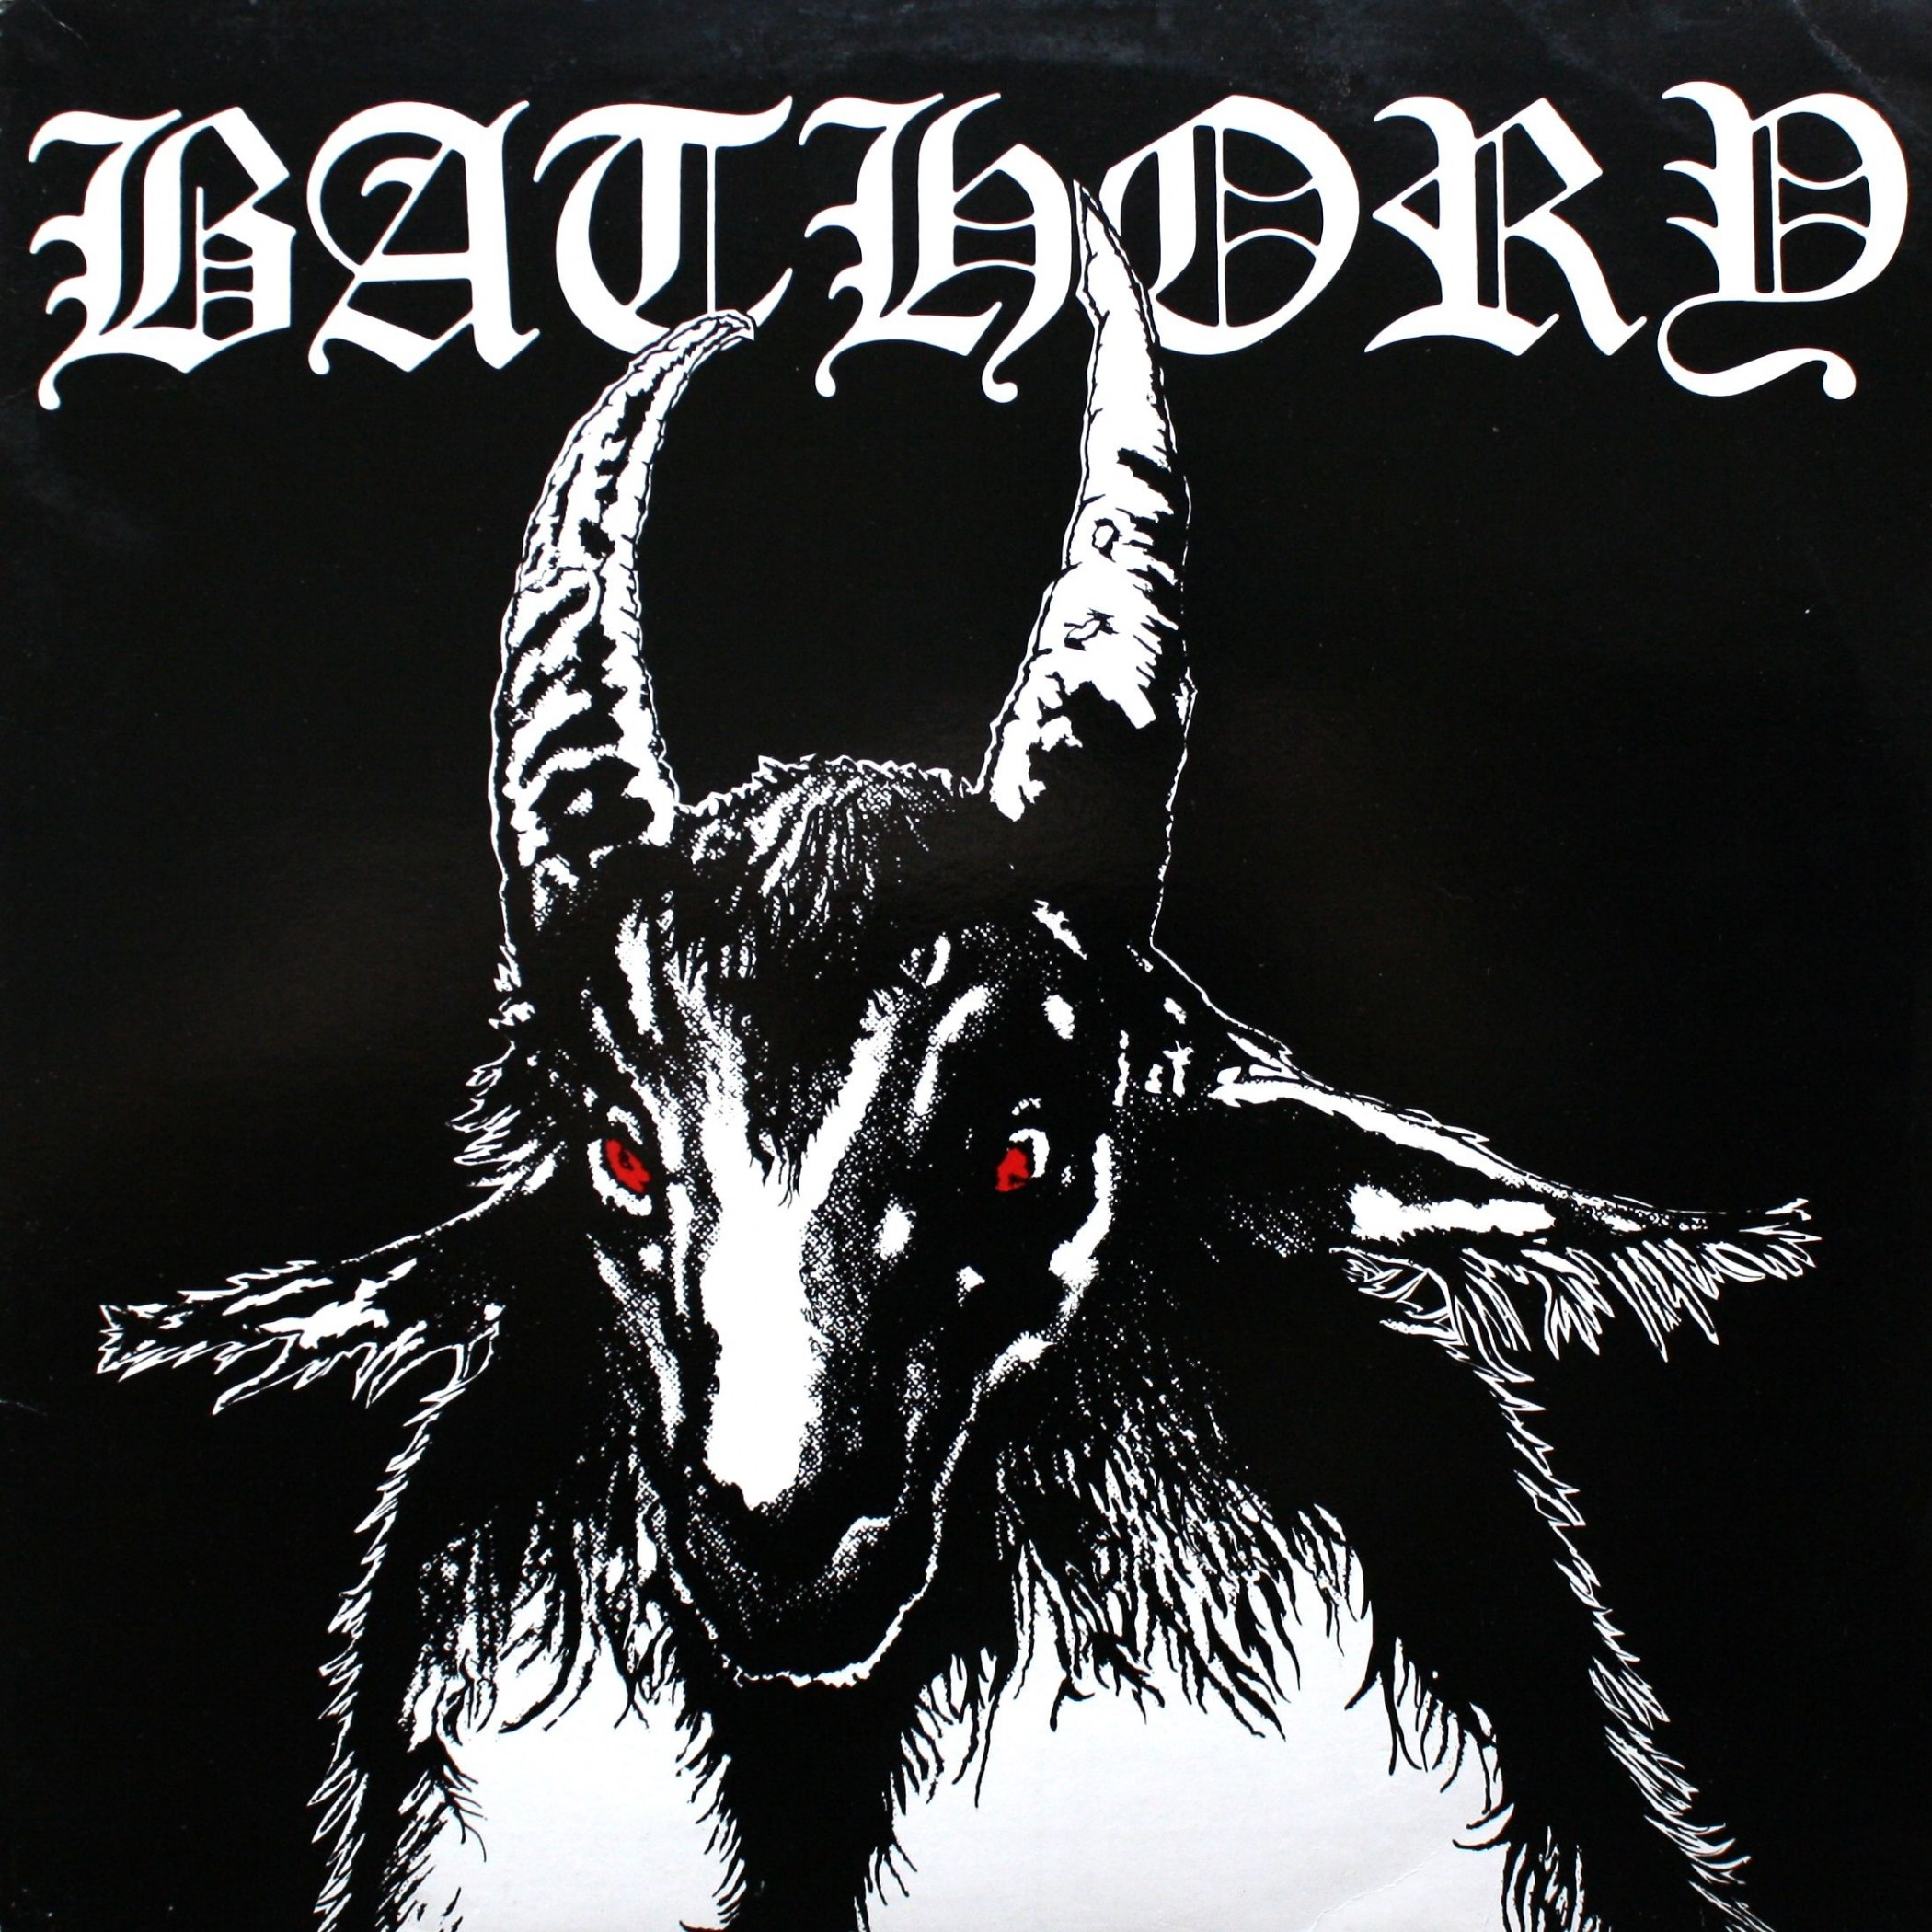 Best 1984 Black Metal album: 'Bathory - Bathory'